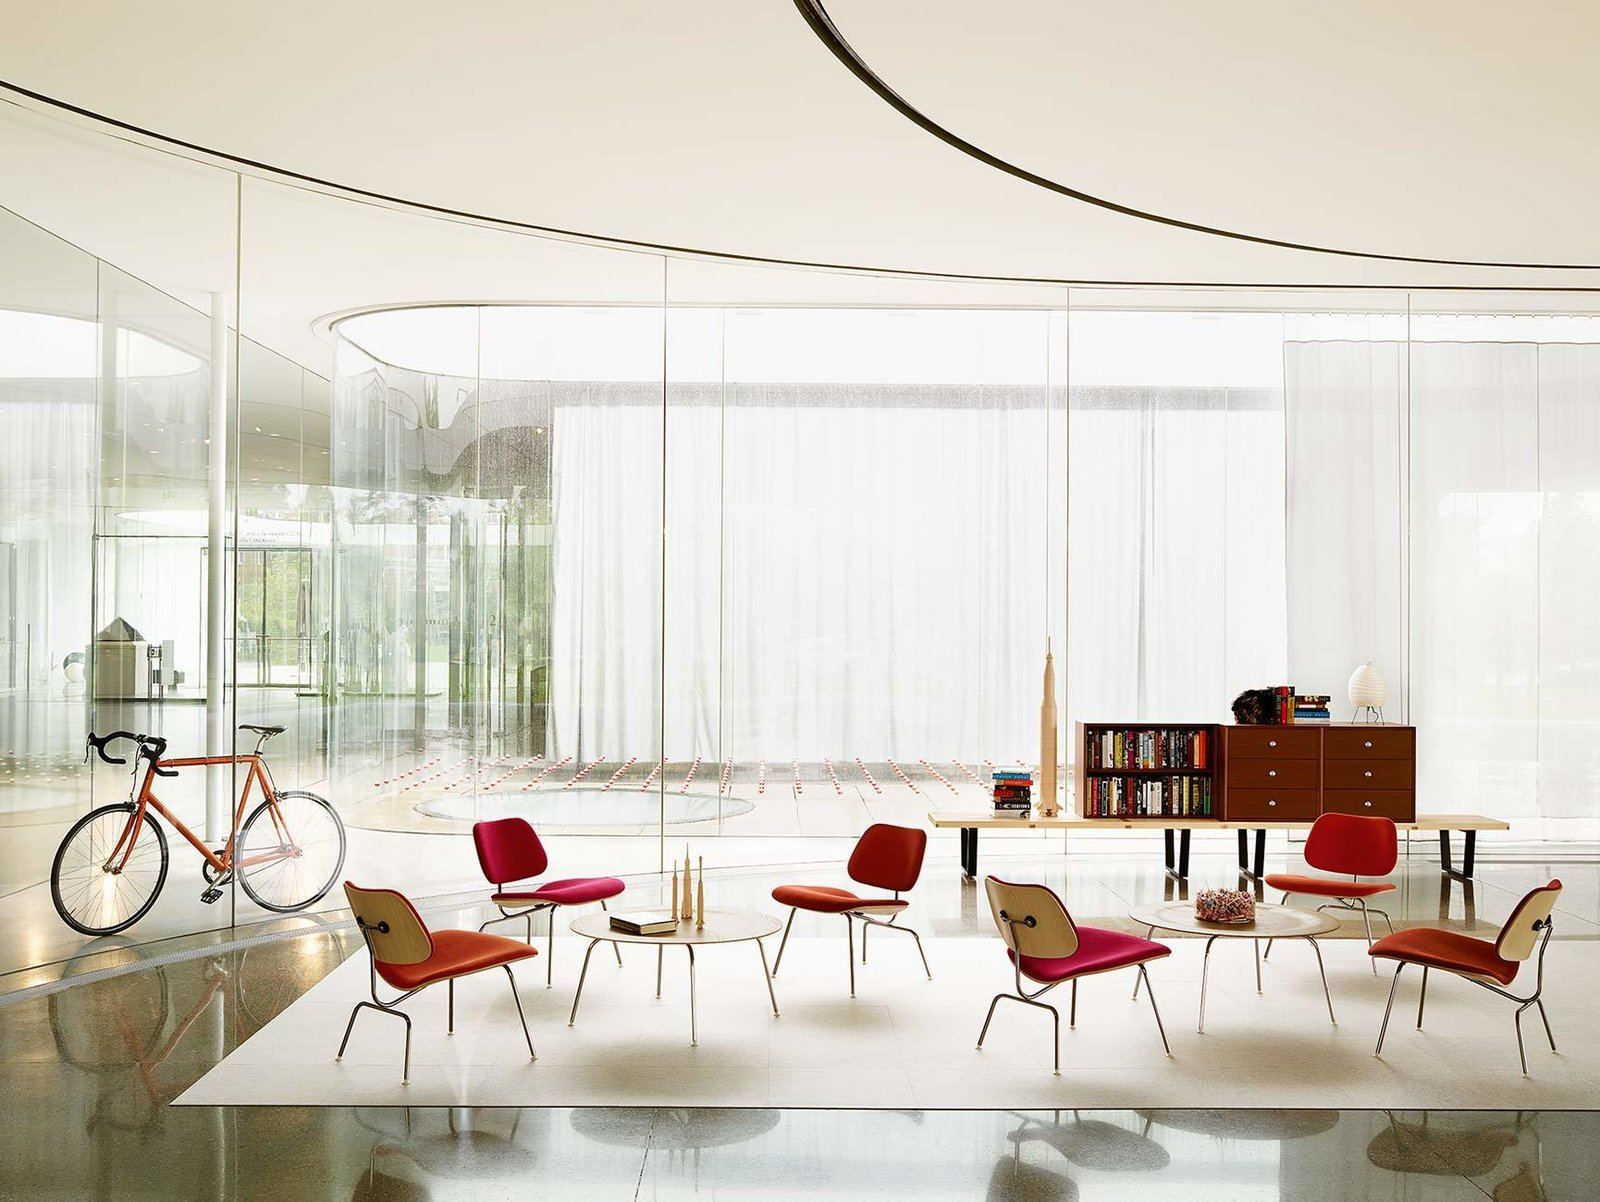 Herman Miller  Photo 1 of 1 in There's a Massive Herman Miller Sale—Here's What You Should Scoop Up Pronto